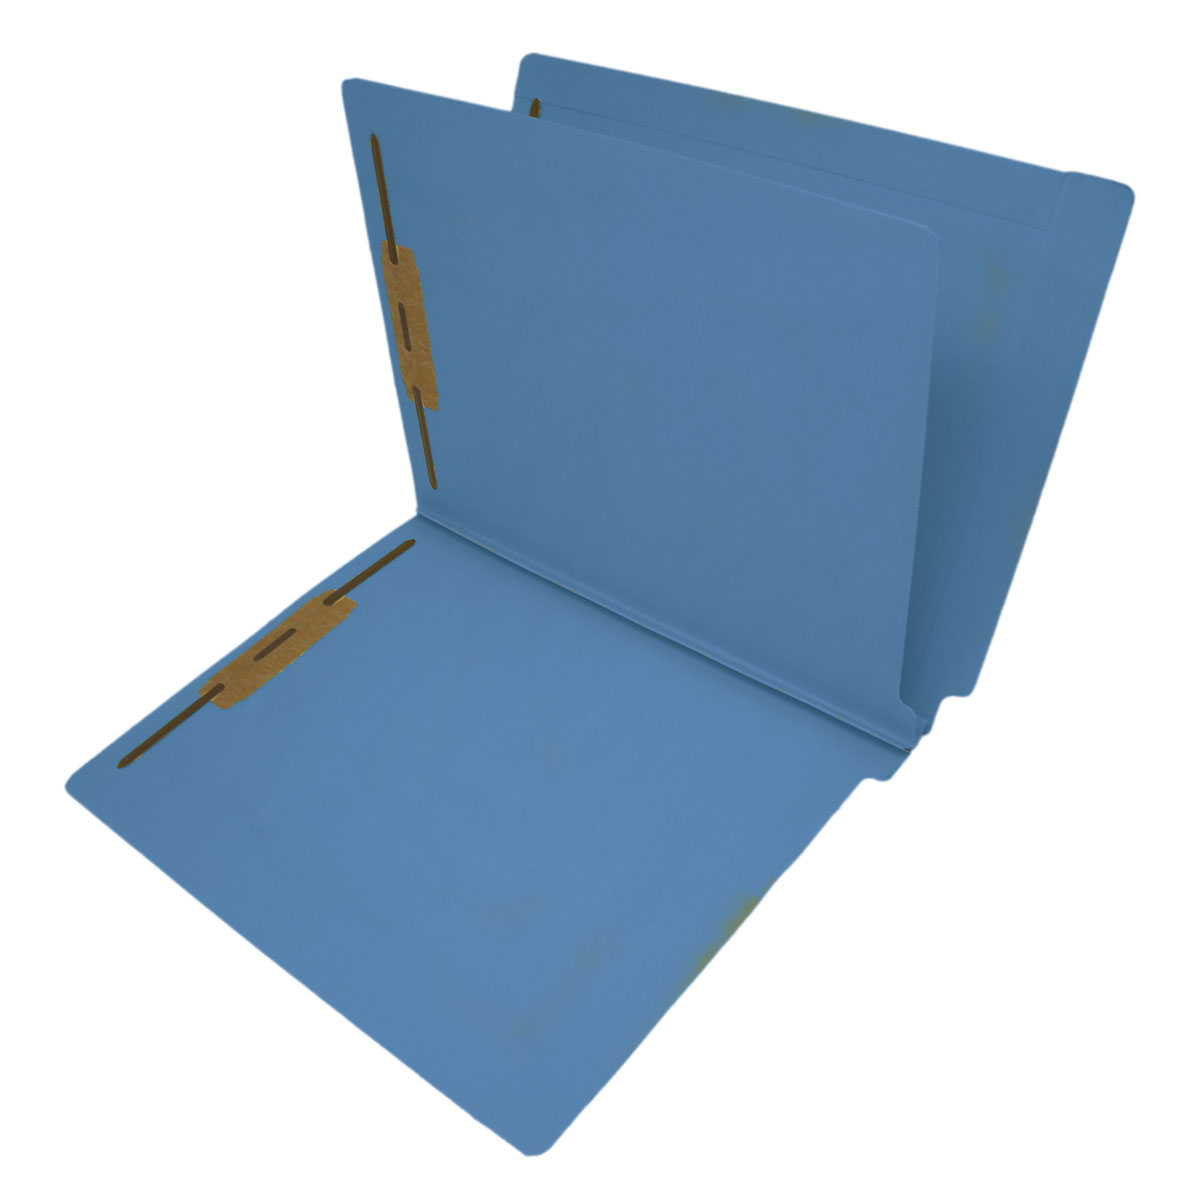 S-9239-BLU - 14 Pt. Blue Classification Folders, Full Cut End Tab, Letter Size, 1 Divider (Box of 25)